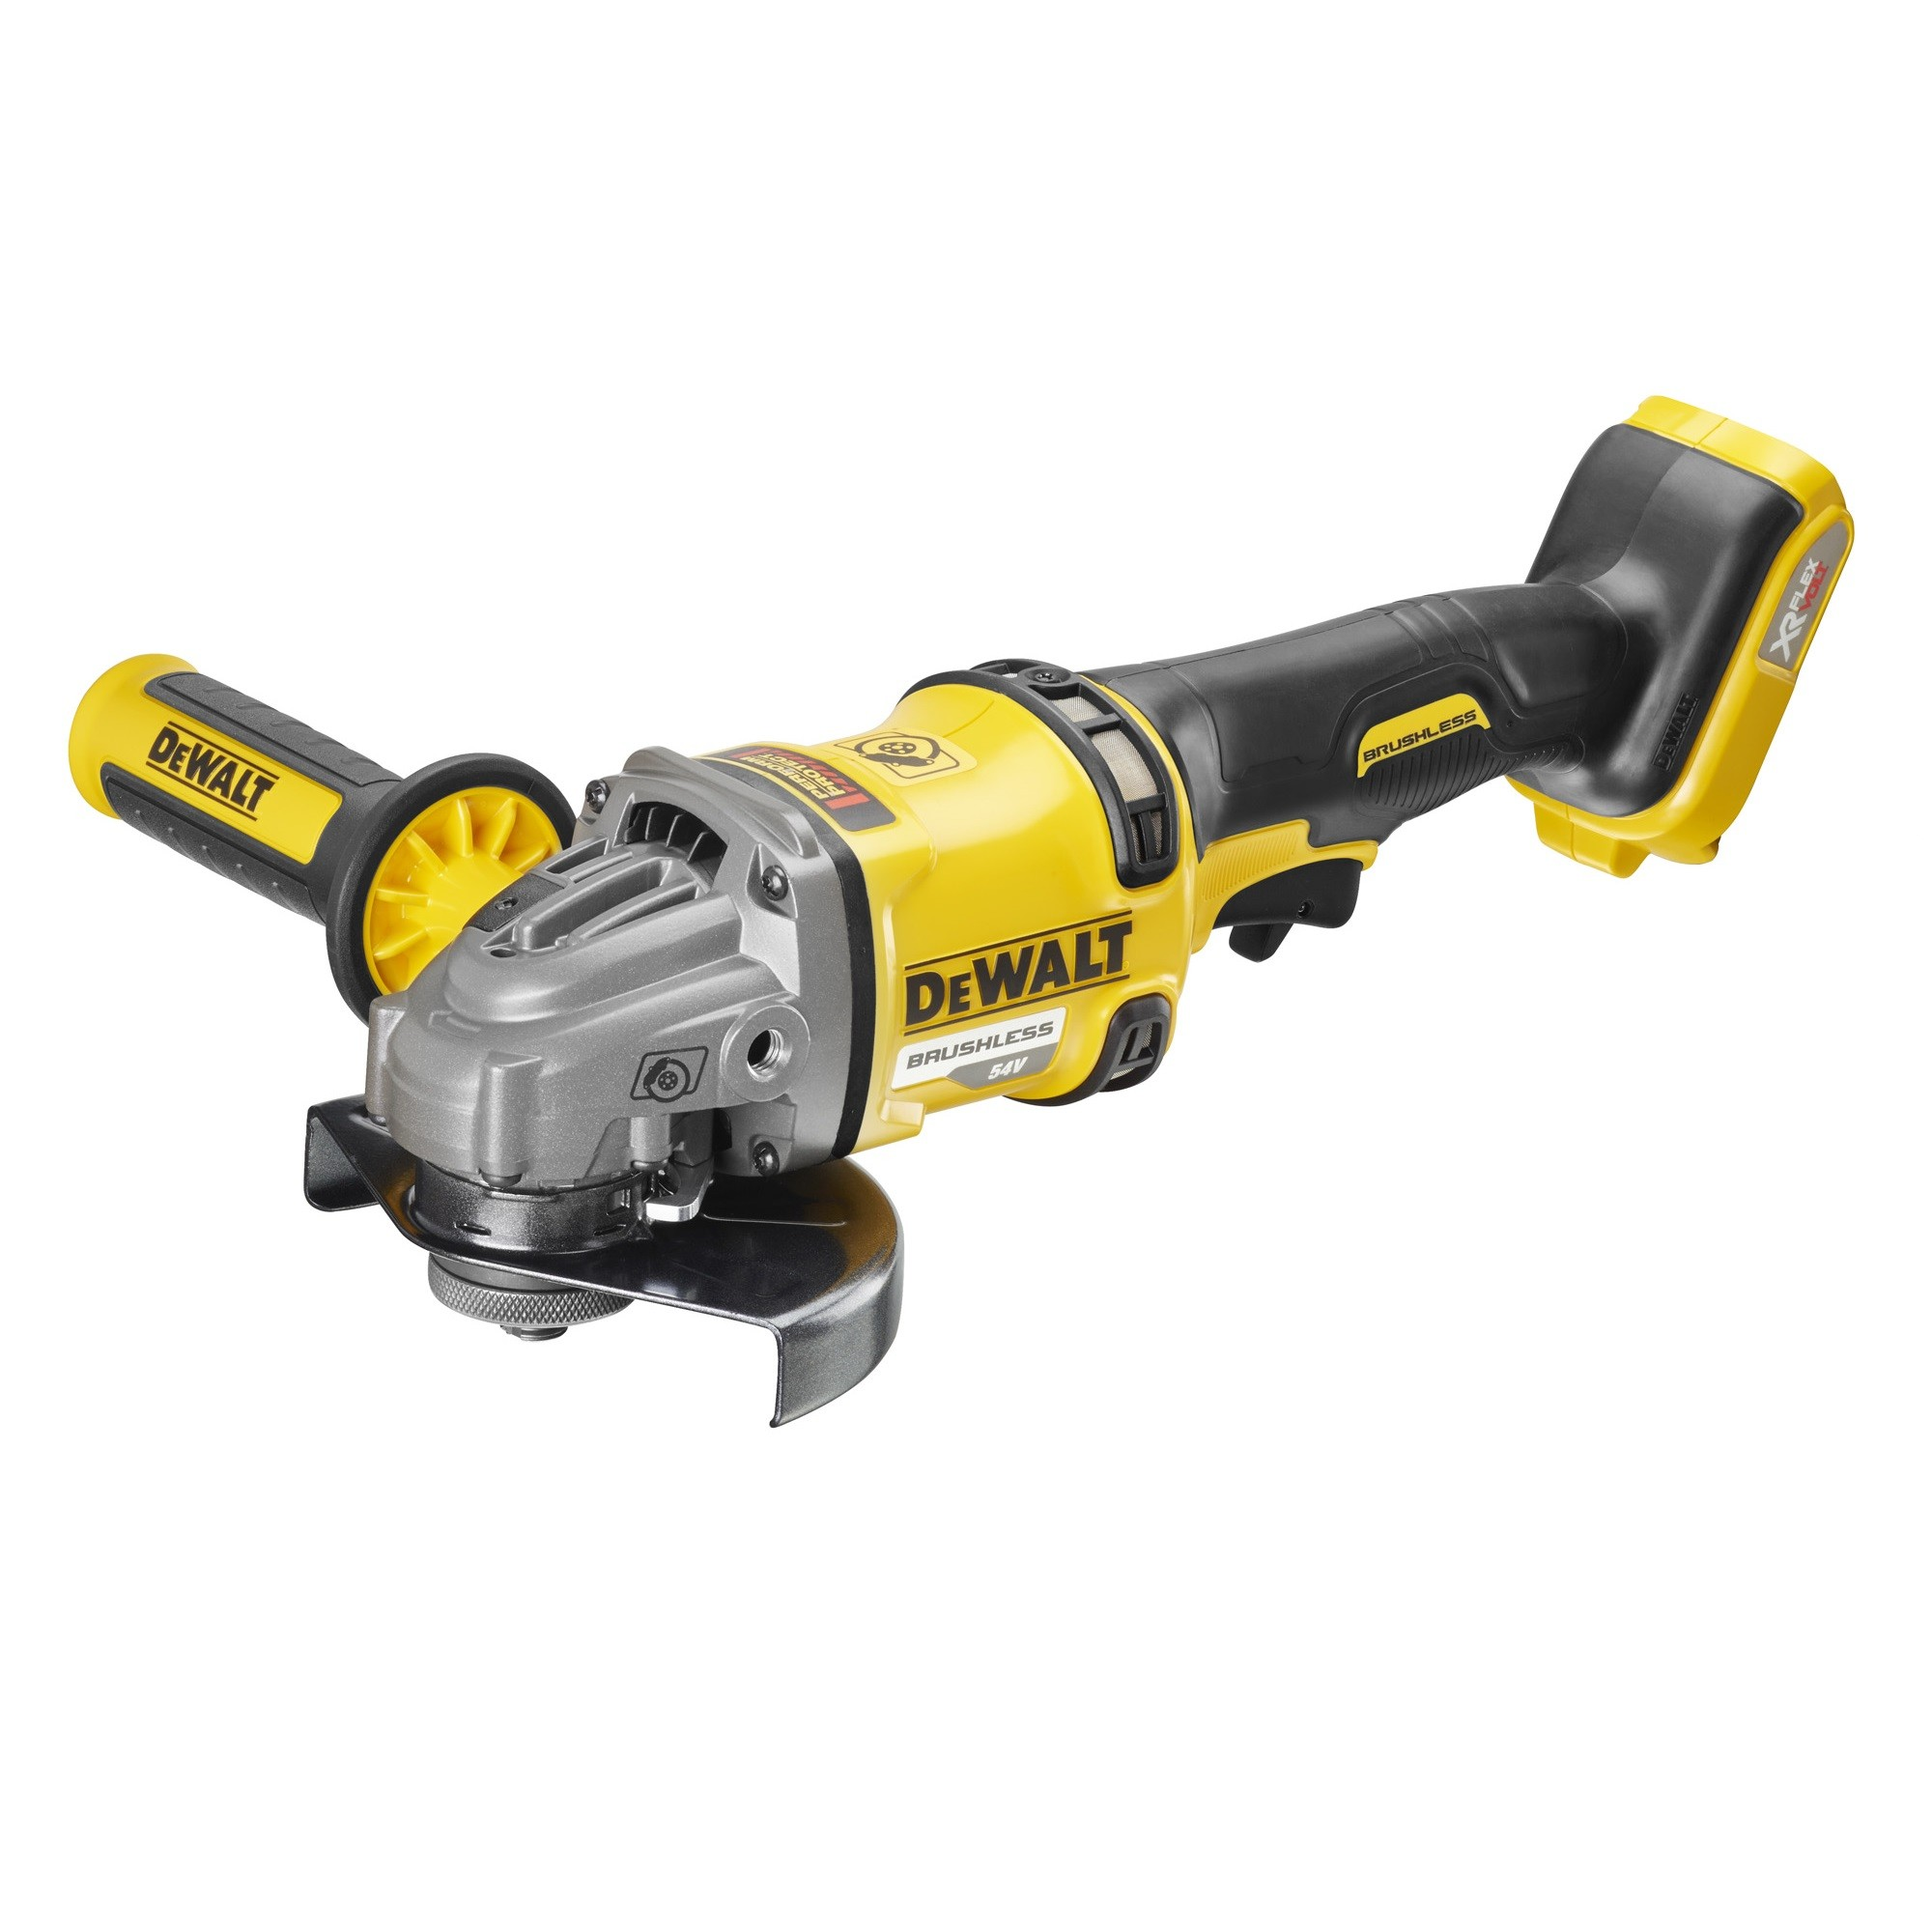 DeWalt DCG414N 54v XR FLEXVOLT Cordless Brushless Angle Grinder Body Only